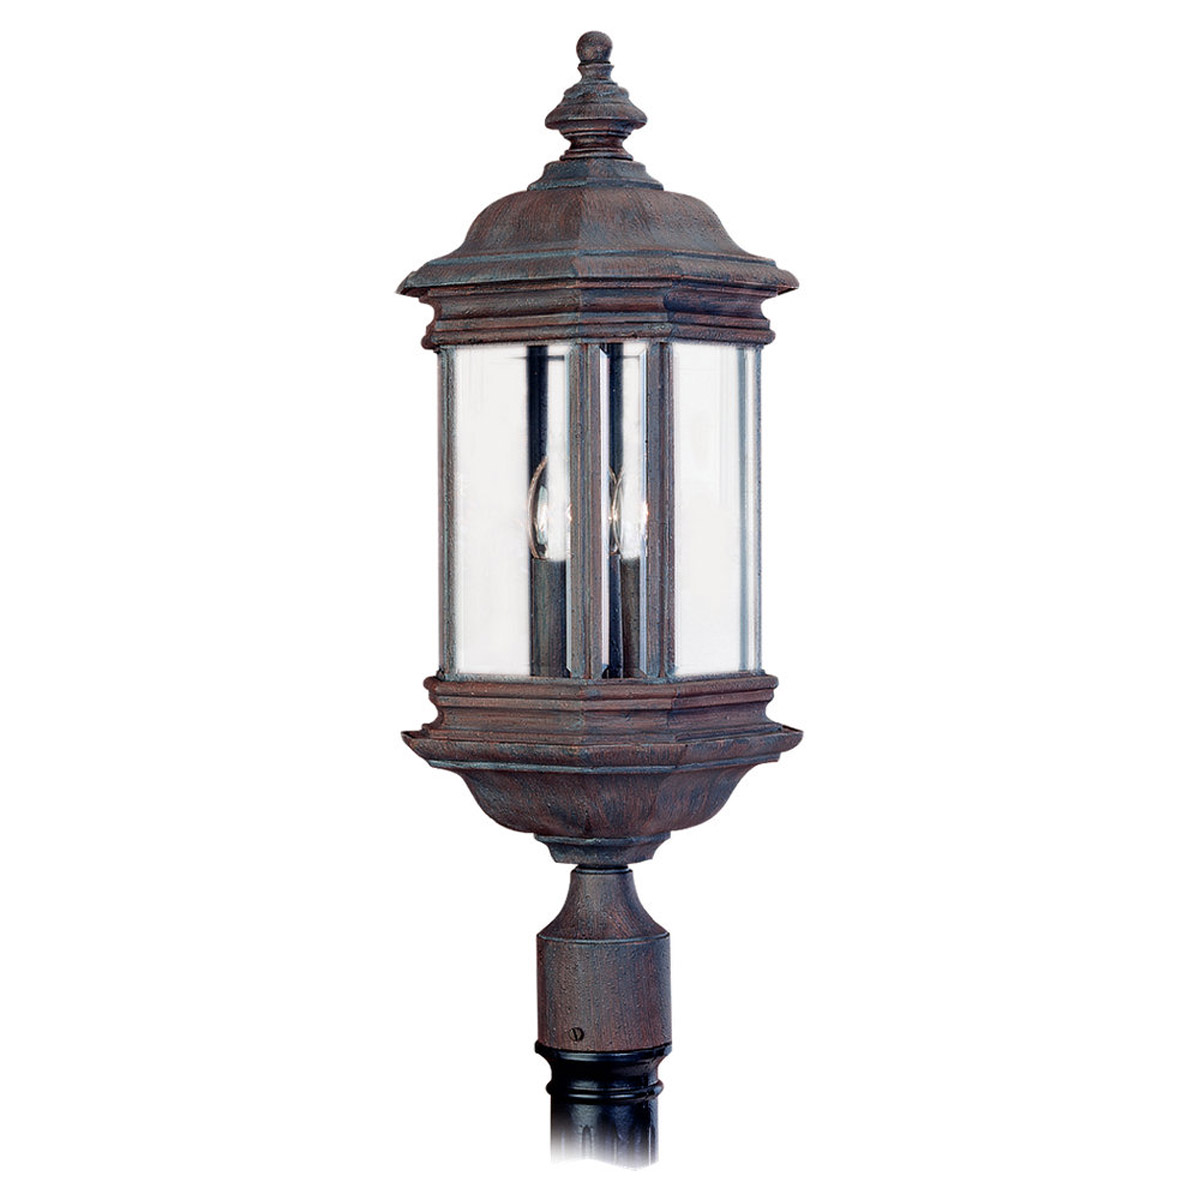 Sea Gull Lighting Hill Gate 3 Light Outdoor Post Lantern in Textured Rust Patina 8238-08 photo